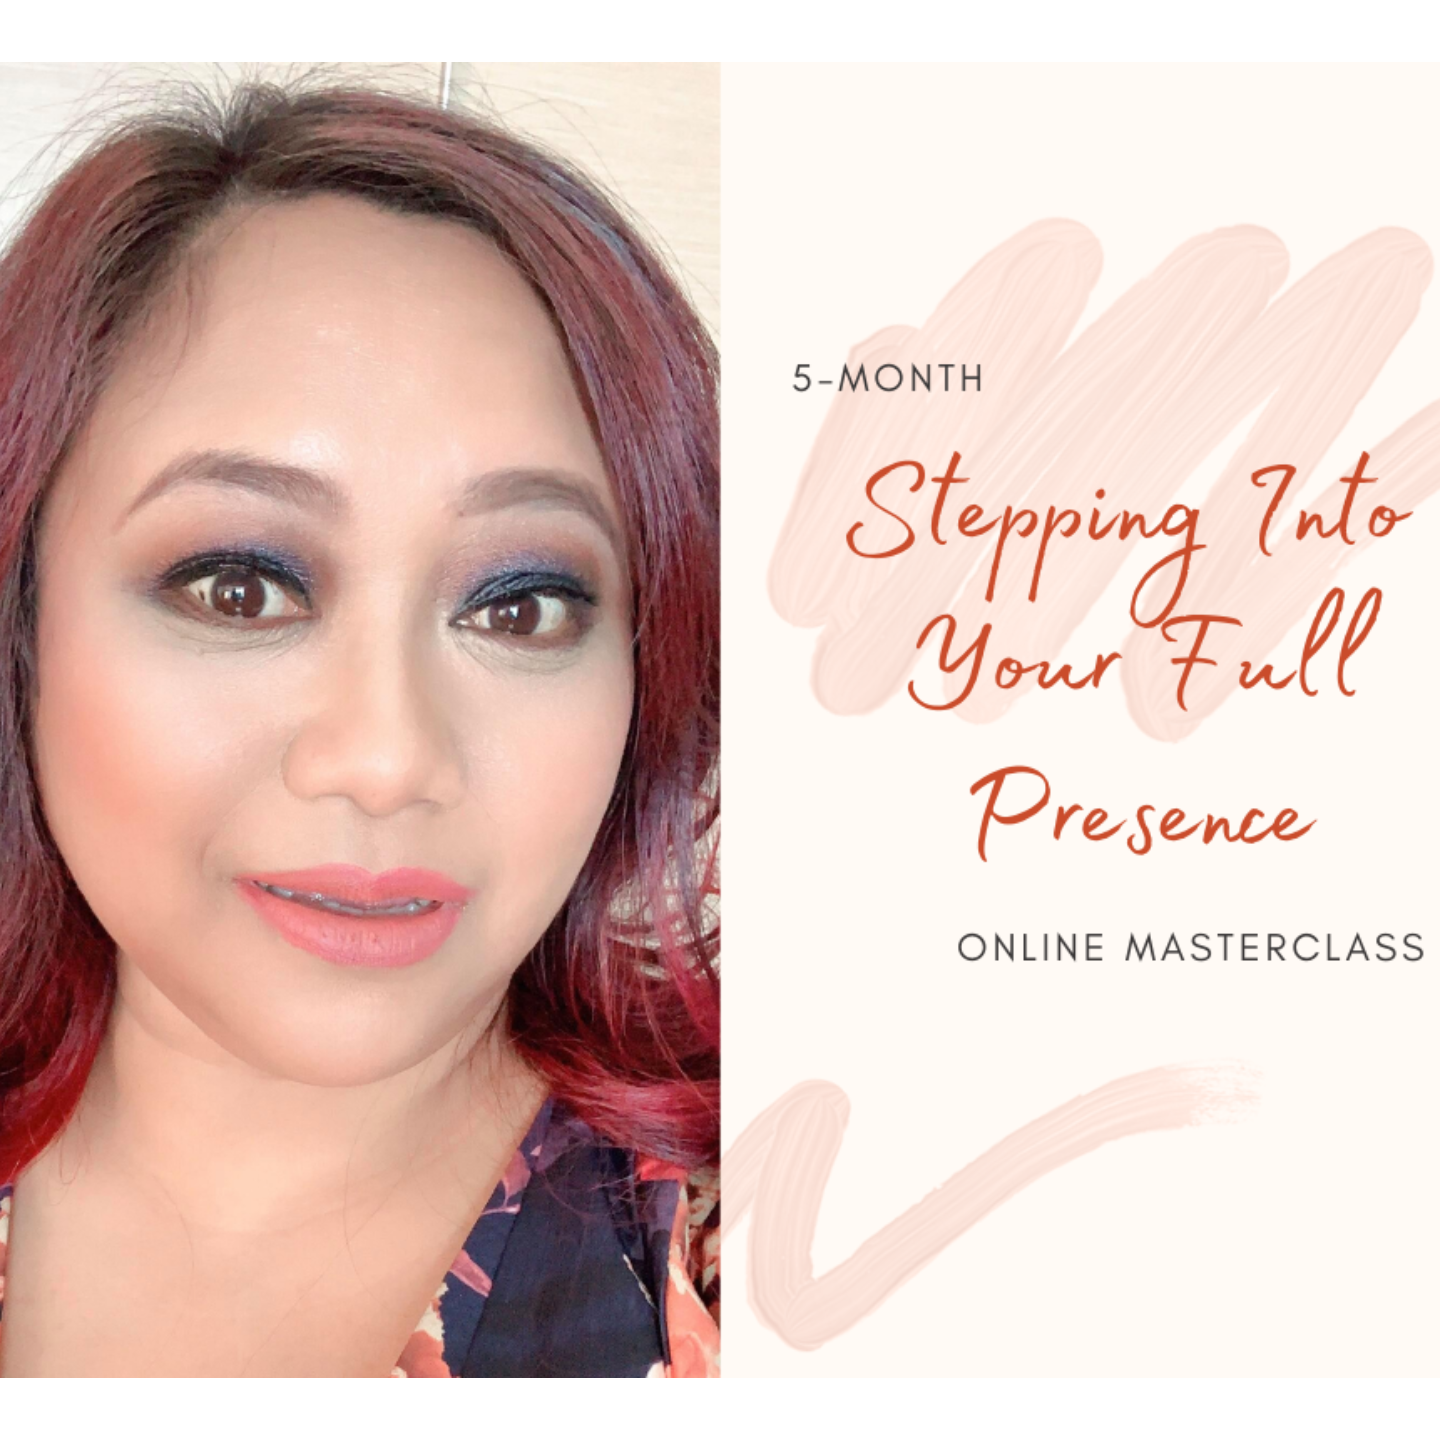 5-Month online Masterclass Stepping Into Your Full Presence